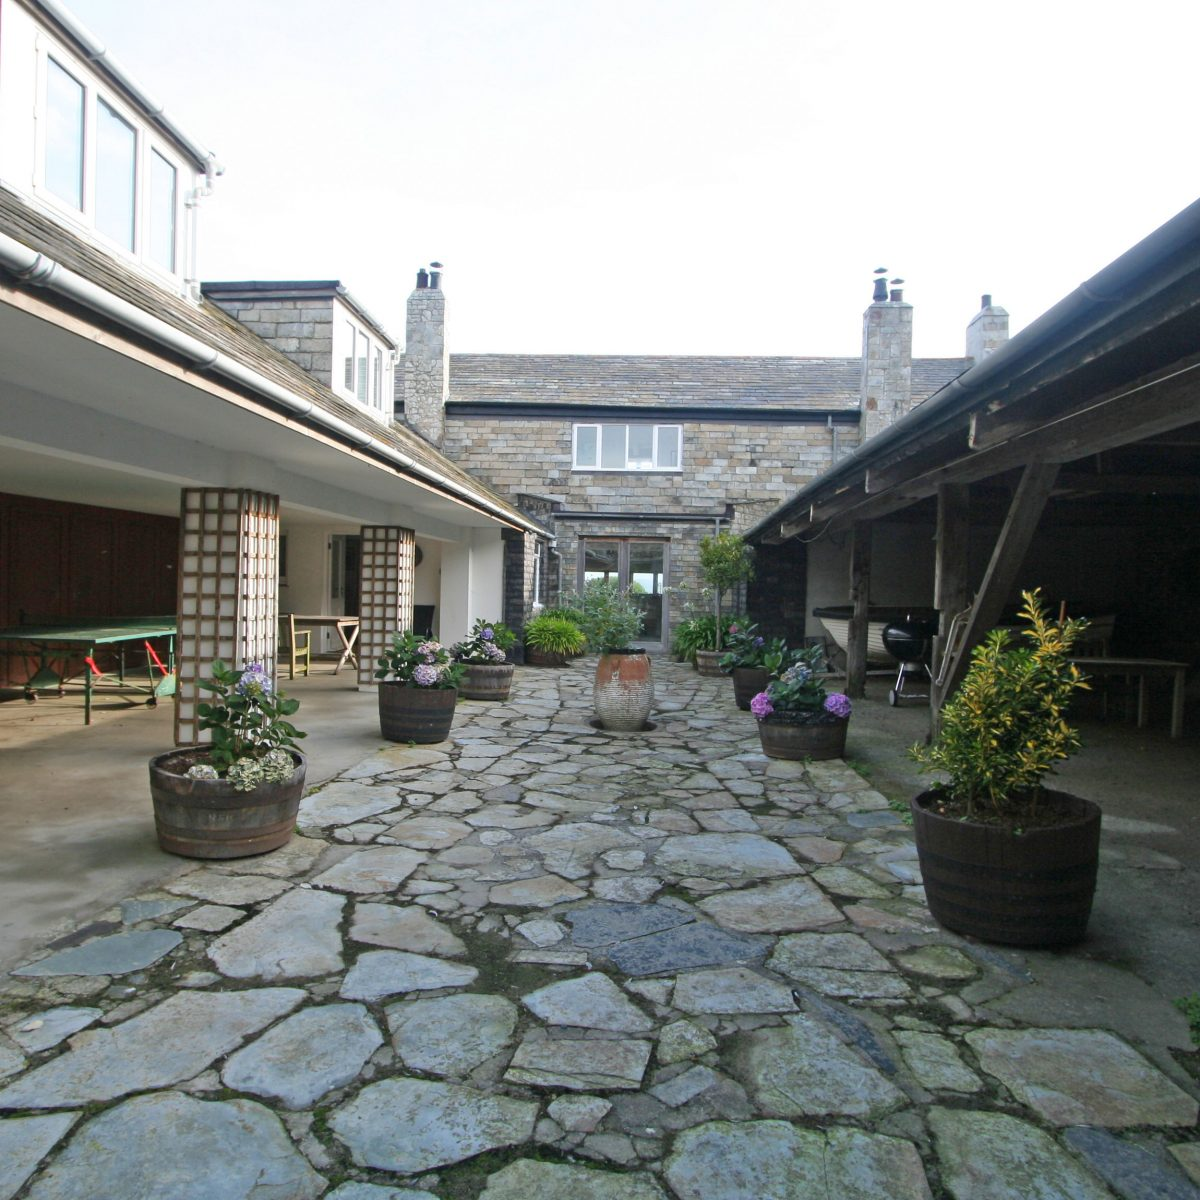 The Cellars with Harbour Holidays